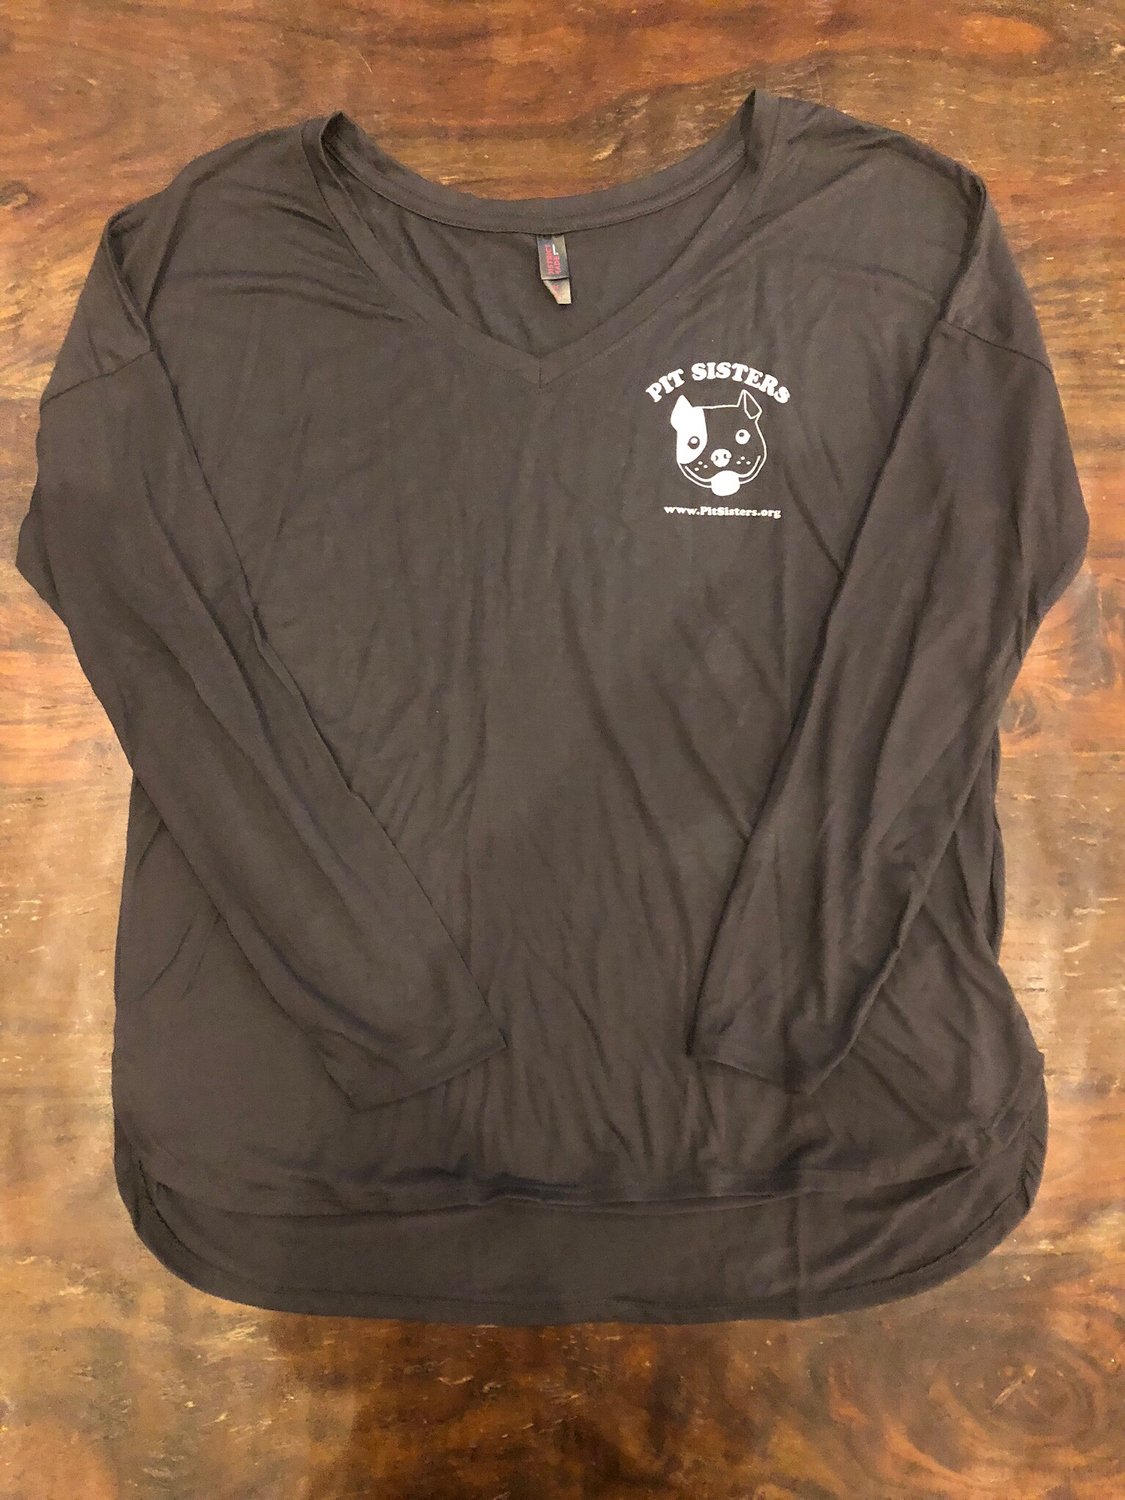 Gray long sleeved VNeck with Pit Sisters logo- Small